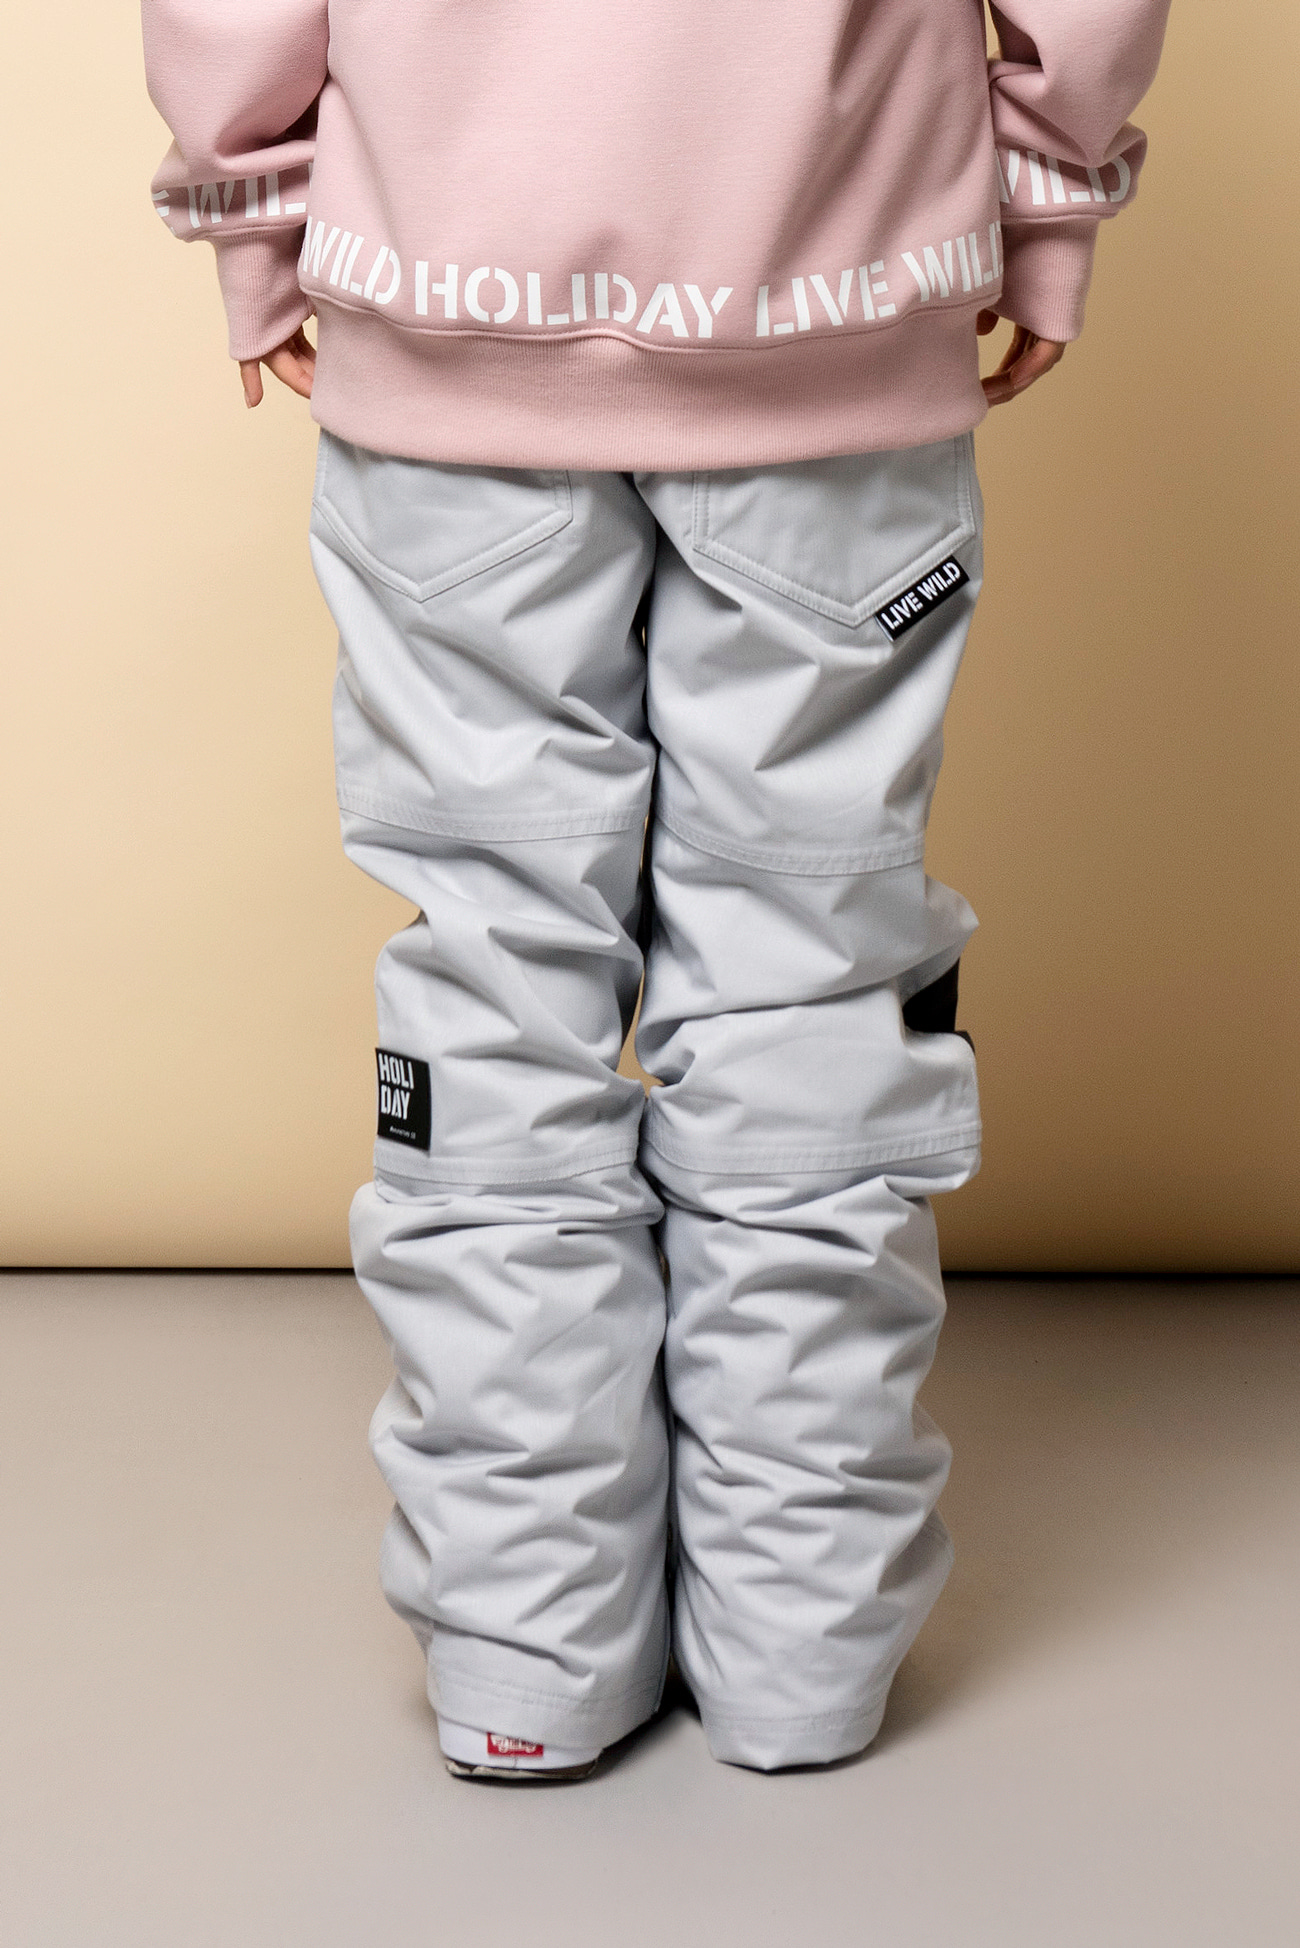 WILD pants - grayHOLIDAY OUTERWEAR